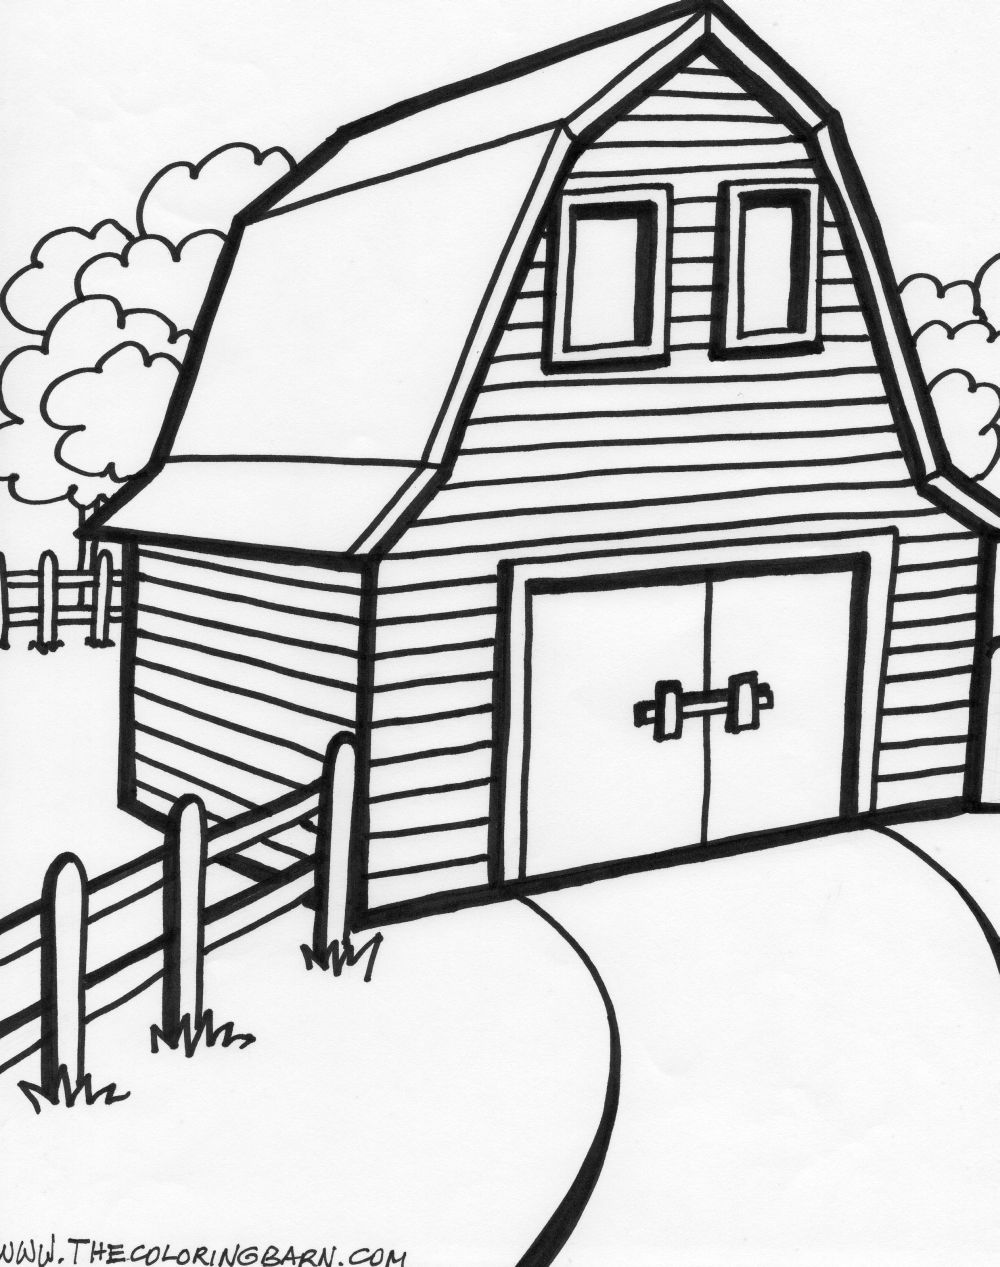 Red Barn Coloring Page http://www.thecoloringbarn.com/barn-coloring-pages.html